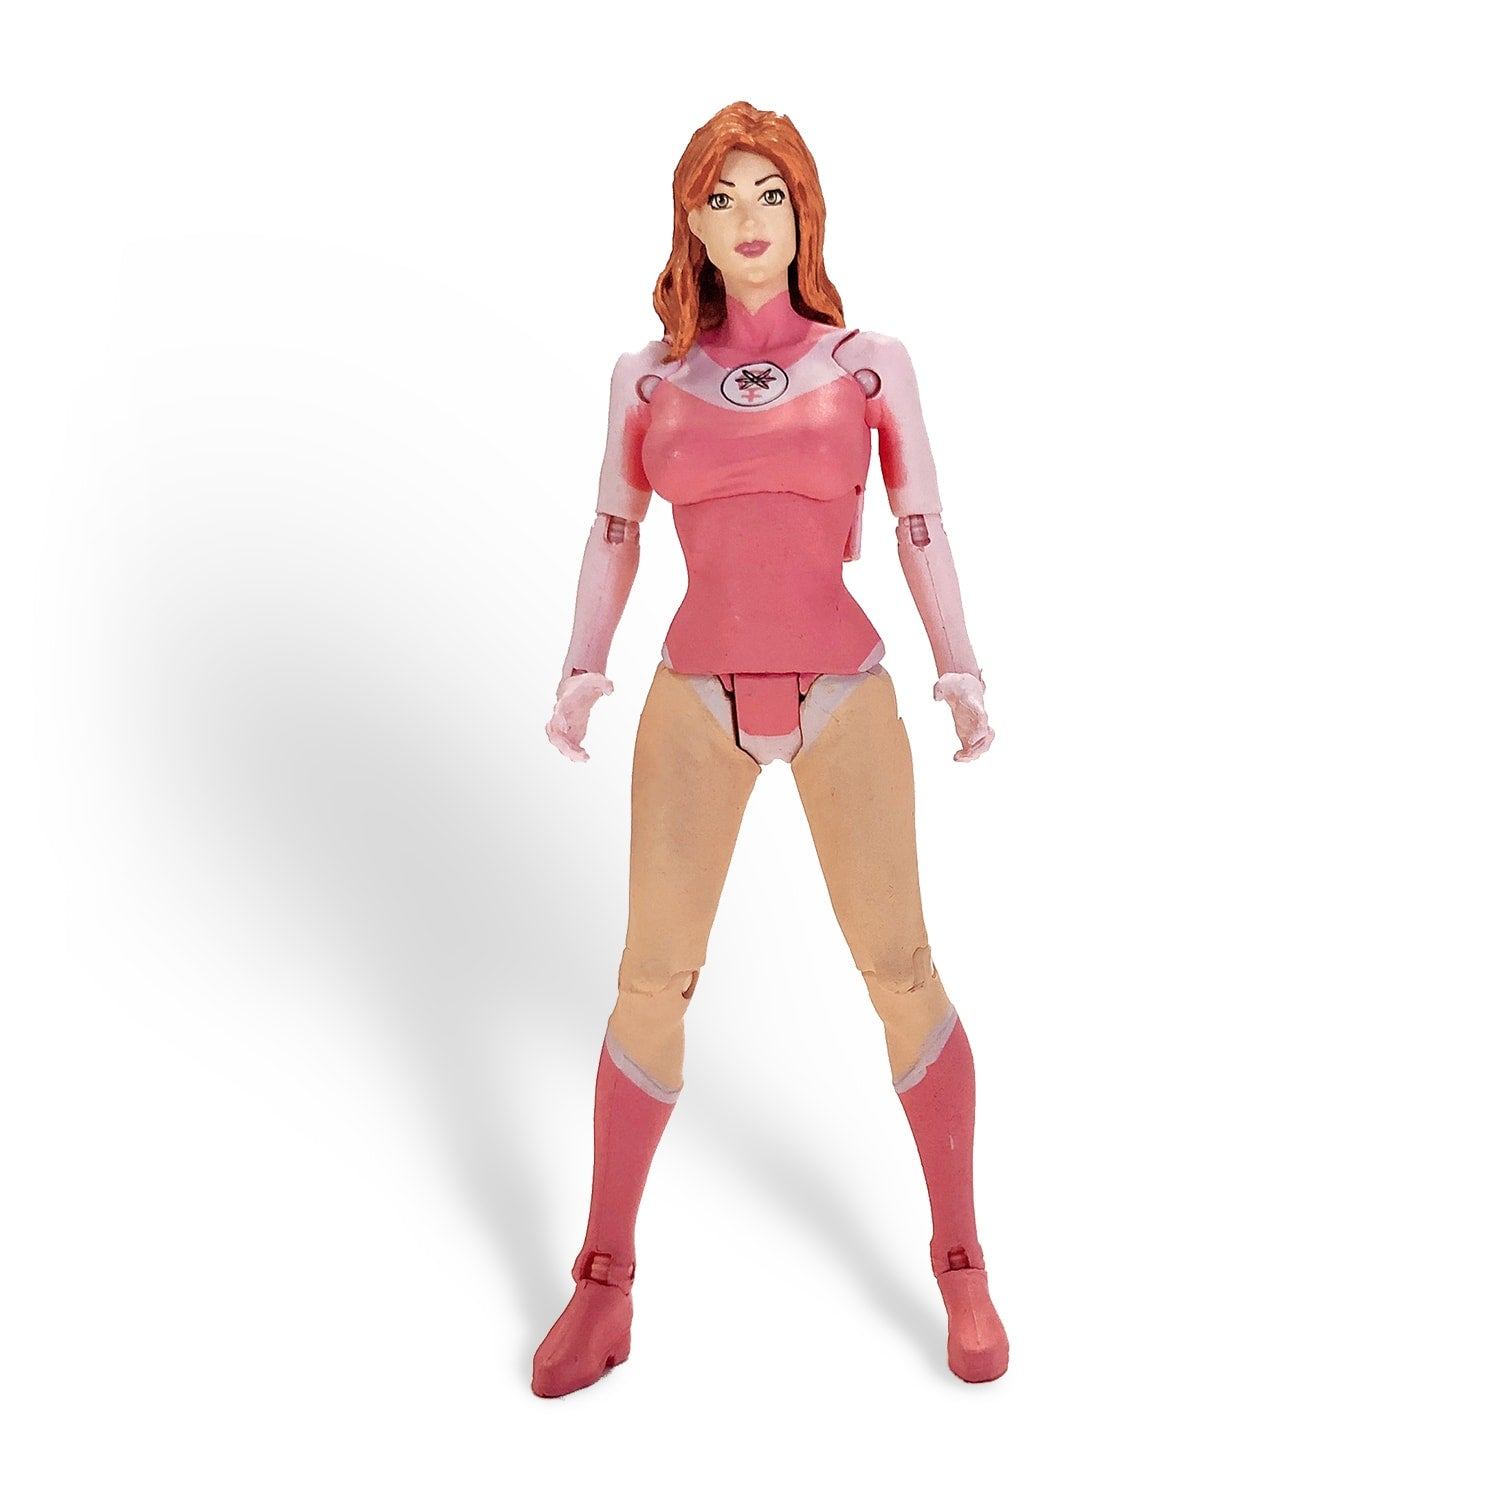 INVINCIBLE: Atom Eve Action Figure